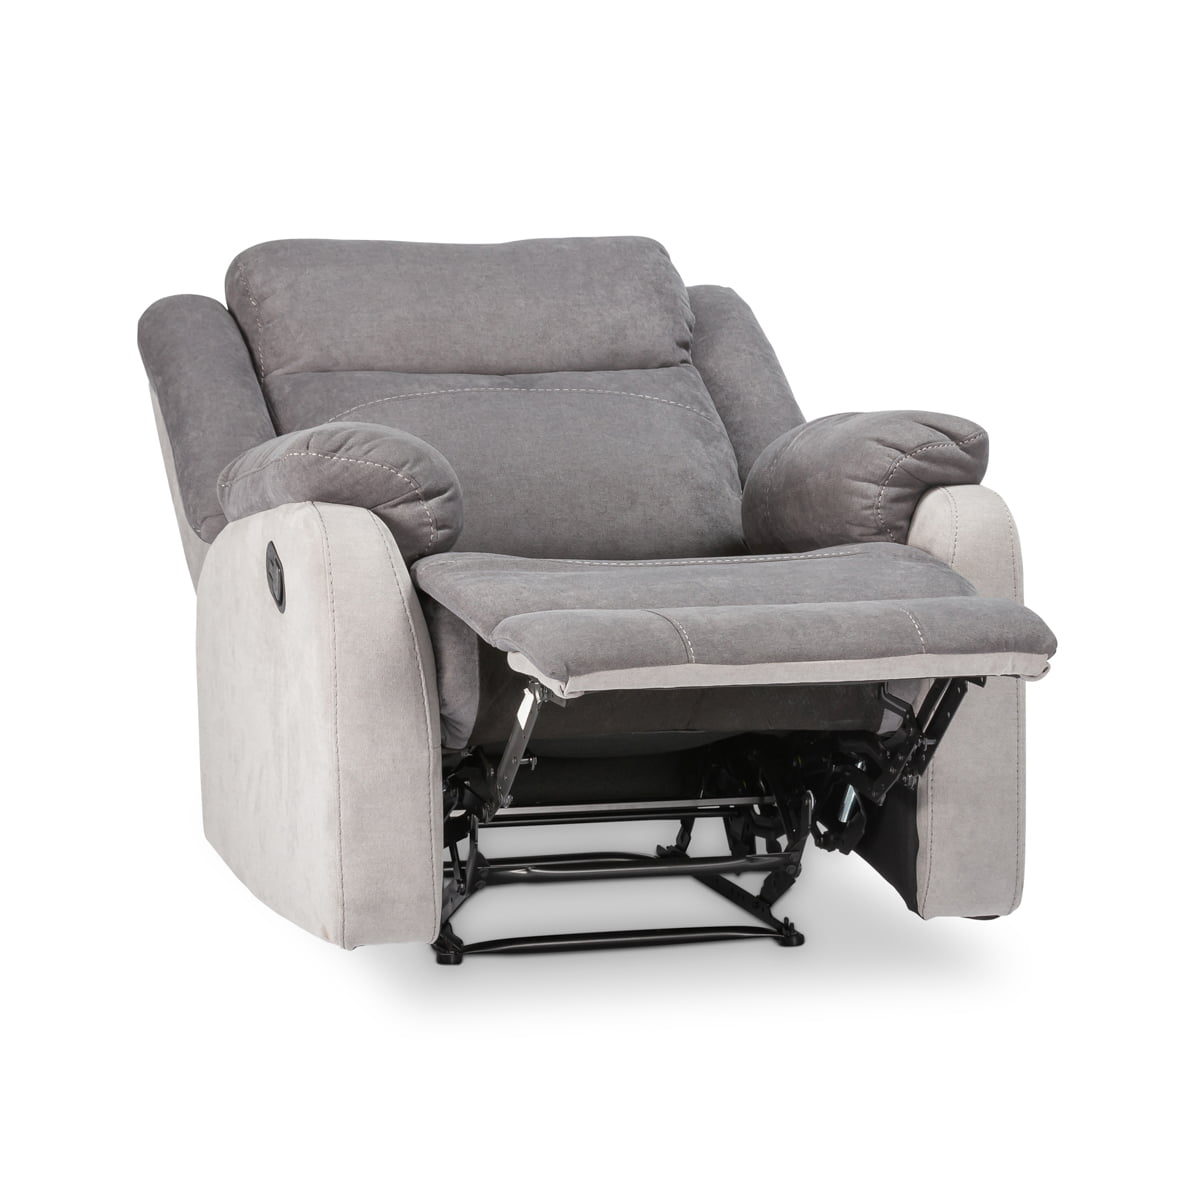 Eiljah Two-Tone Armchair Recliner